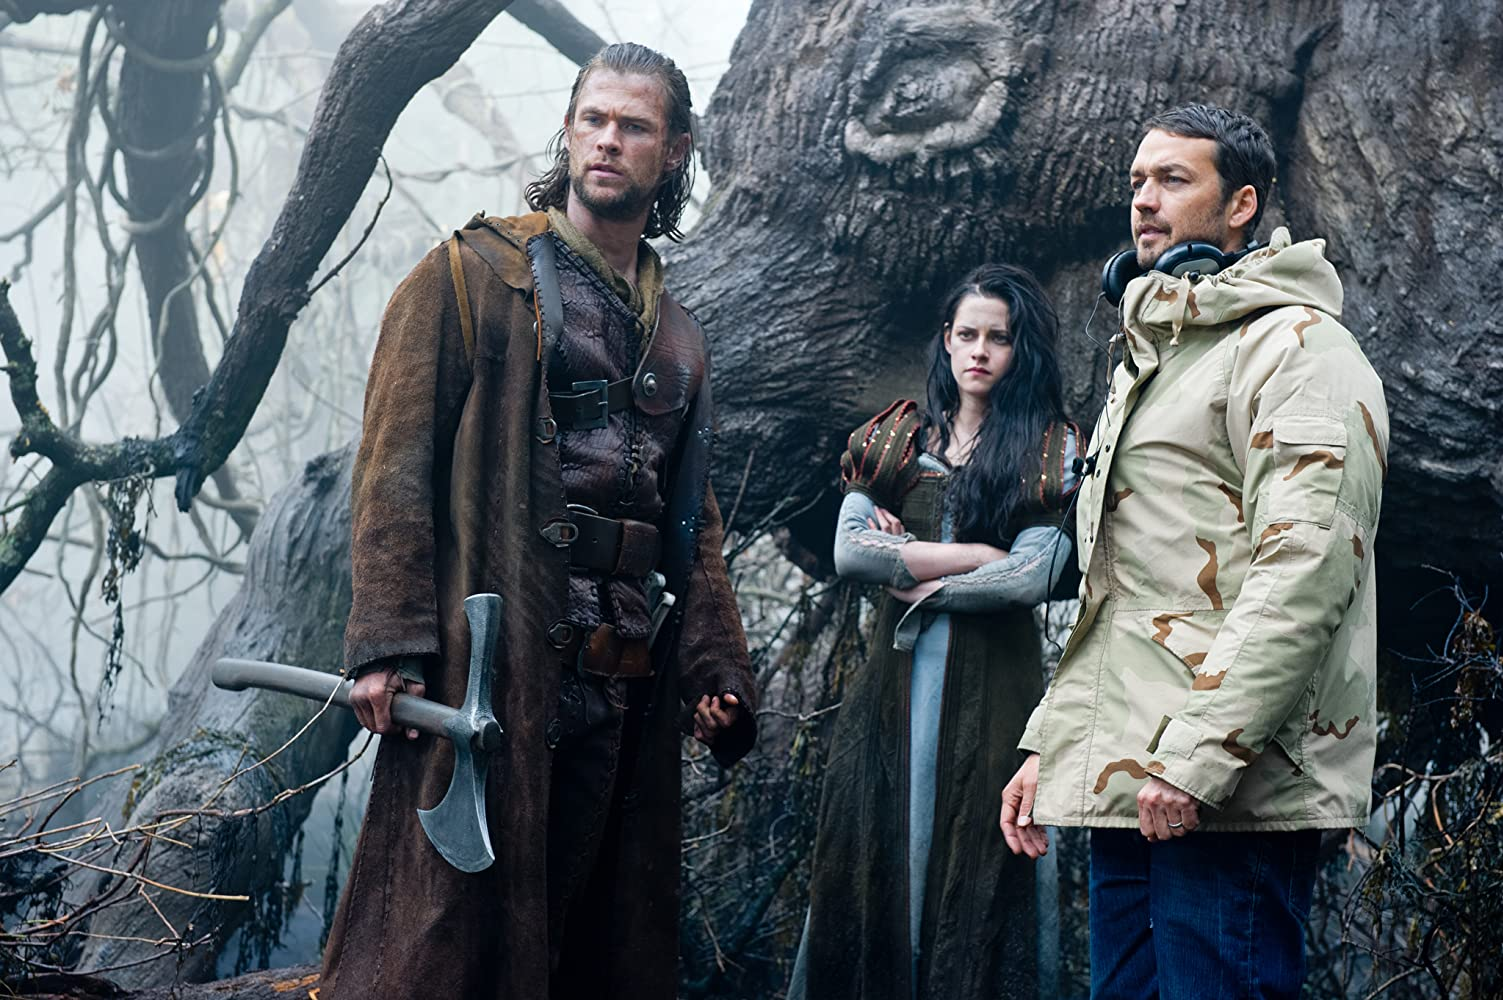 Kristen Stewart, Chris Hemsworth, and Rupert Sanders in Snow White and the Huntsman (2012)